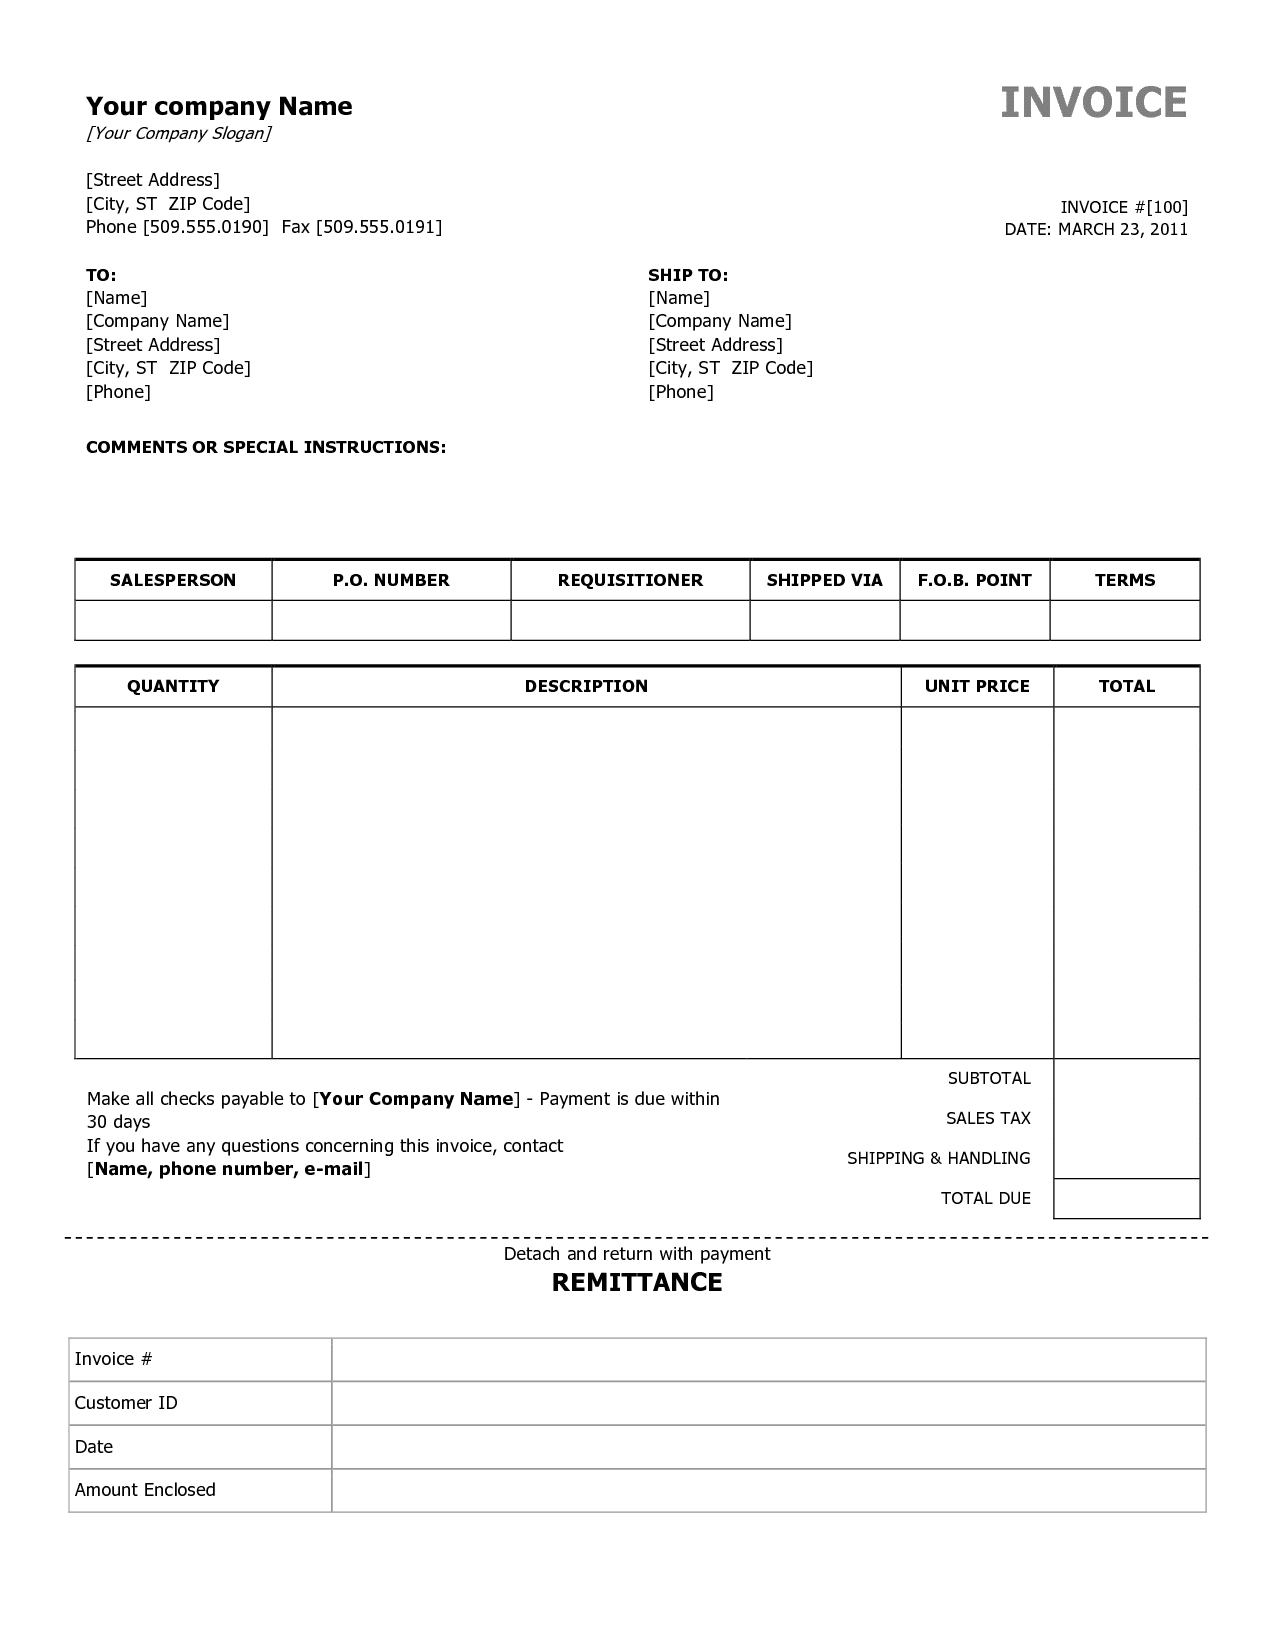 Invoice Templates Printable Free Invoice Template Excel Free Download Spreadsheet Templates for Busines Spreadsheet Templates for Busines Free Invoice Template